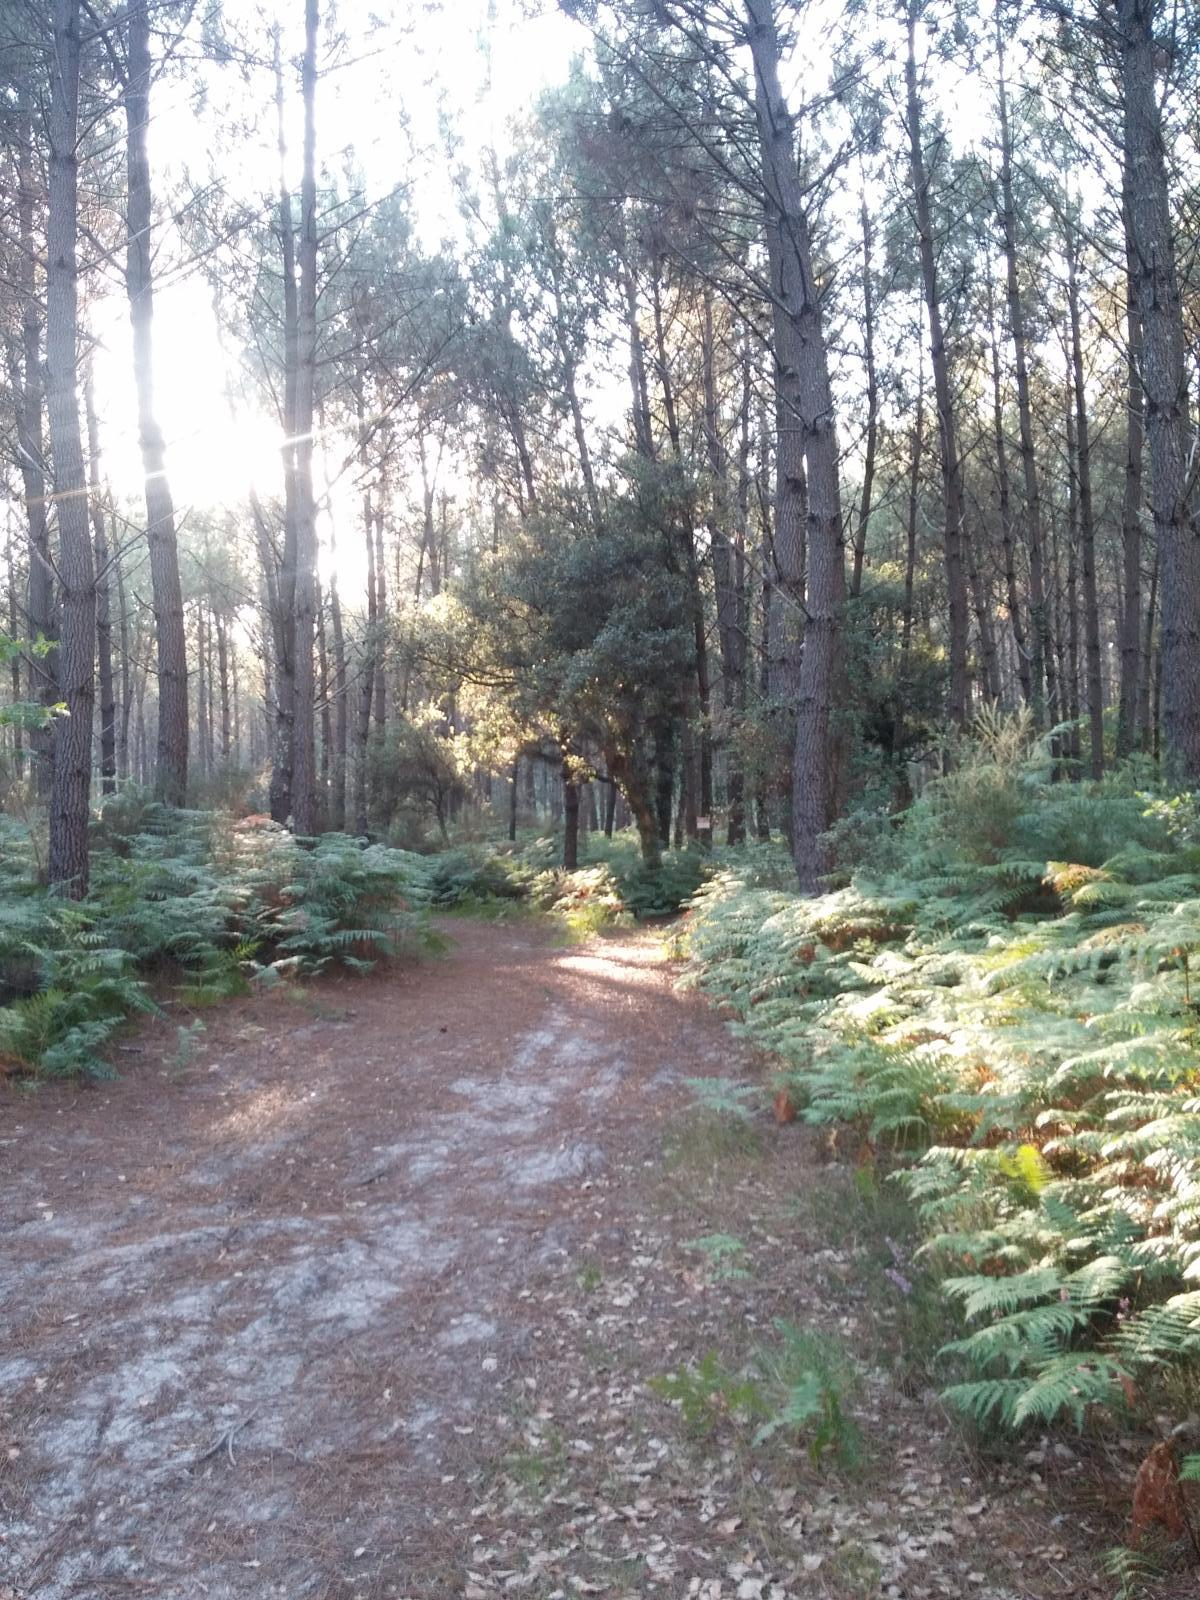 Photo of Ruta MTB por pistas forestales (Vieux Boucau & Messanges, France)